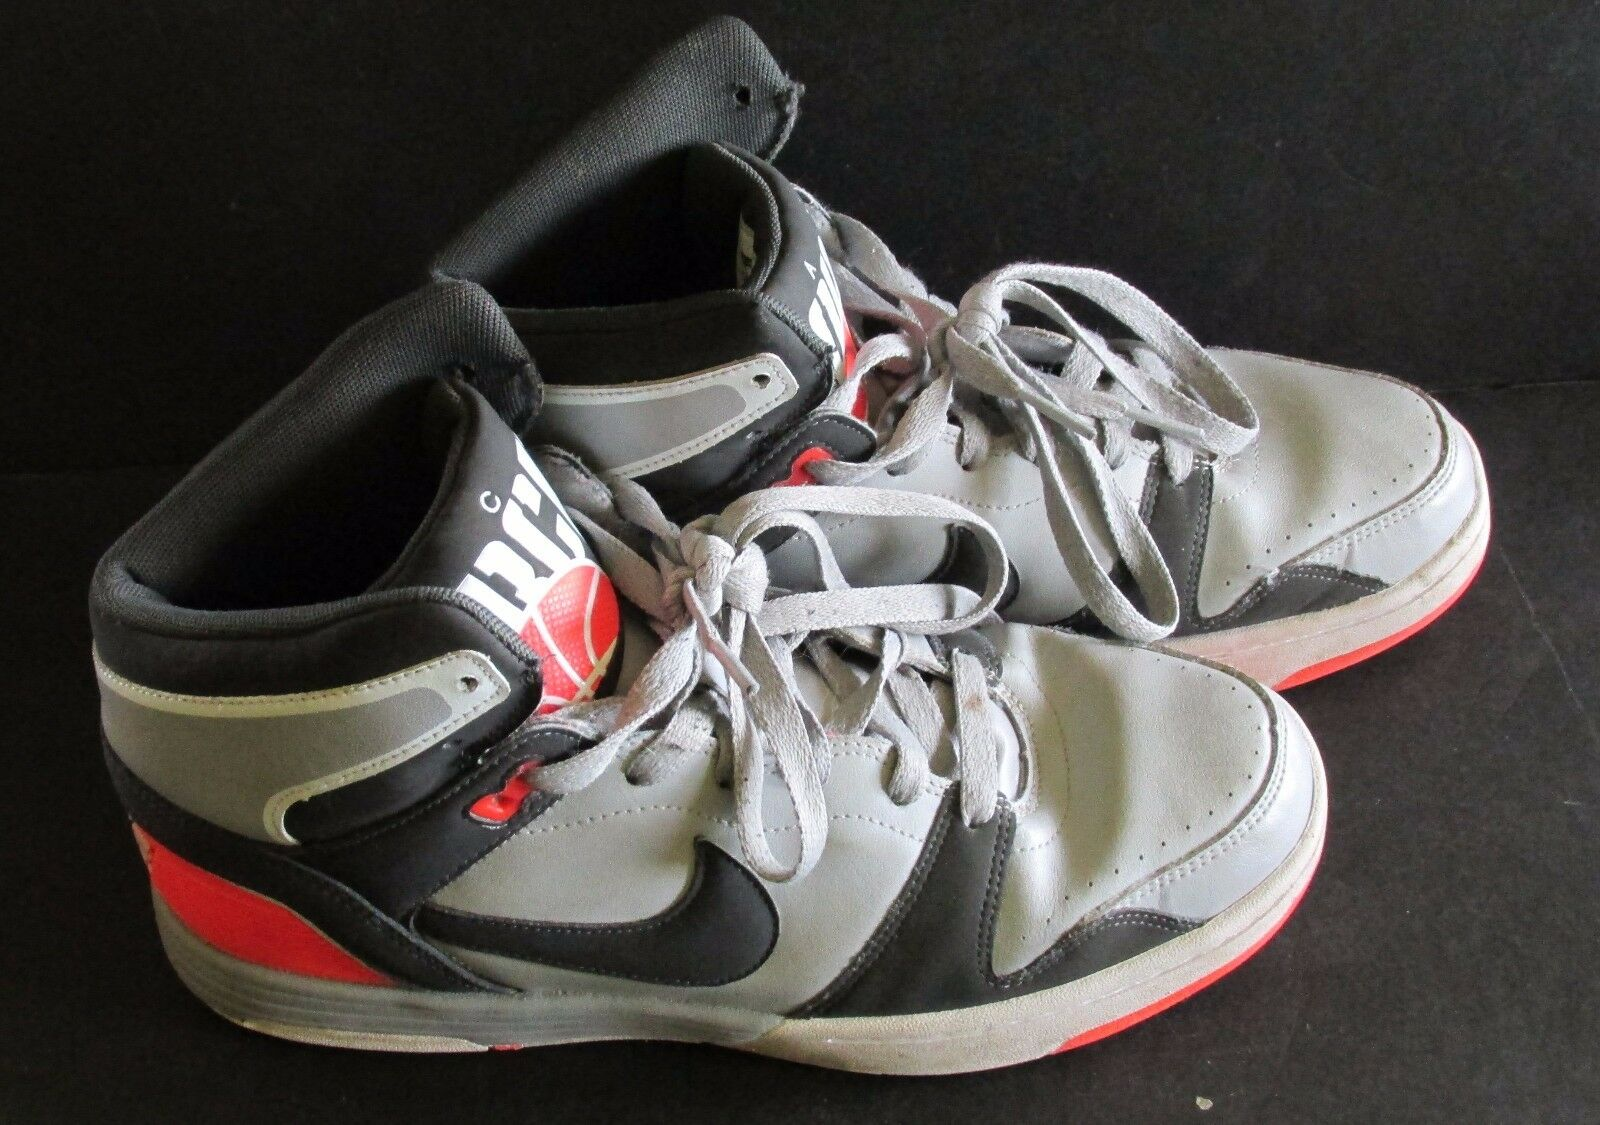 la 8,5 force des baskets nike sz 8,5 la m mach mi - basketball hommes 5a4bad